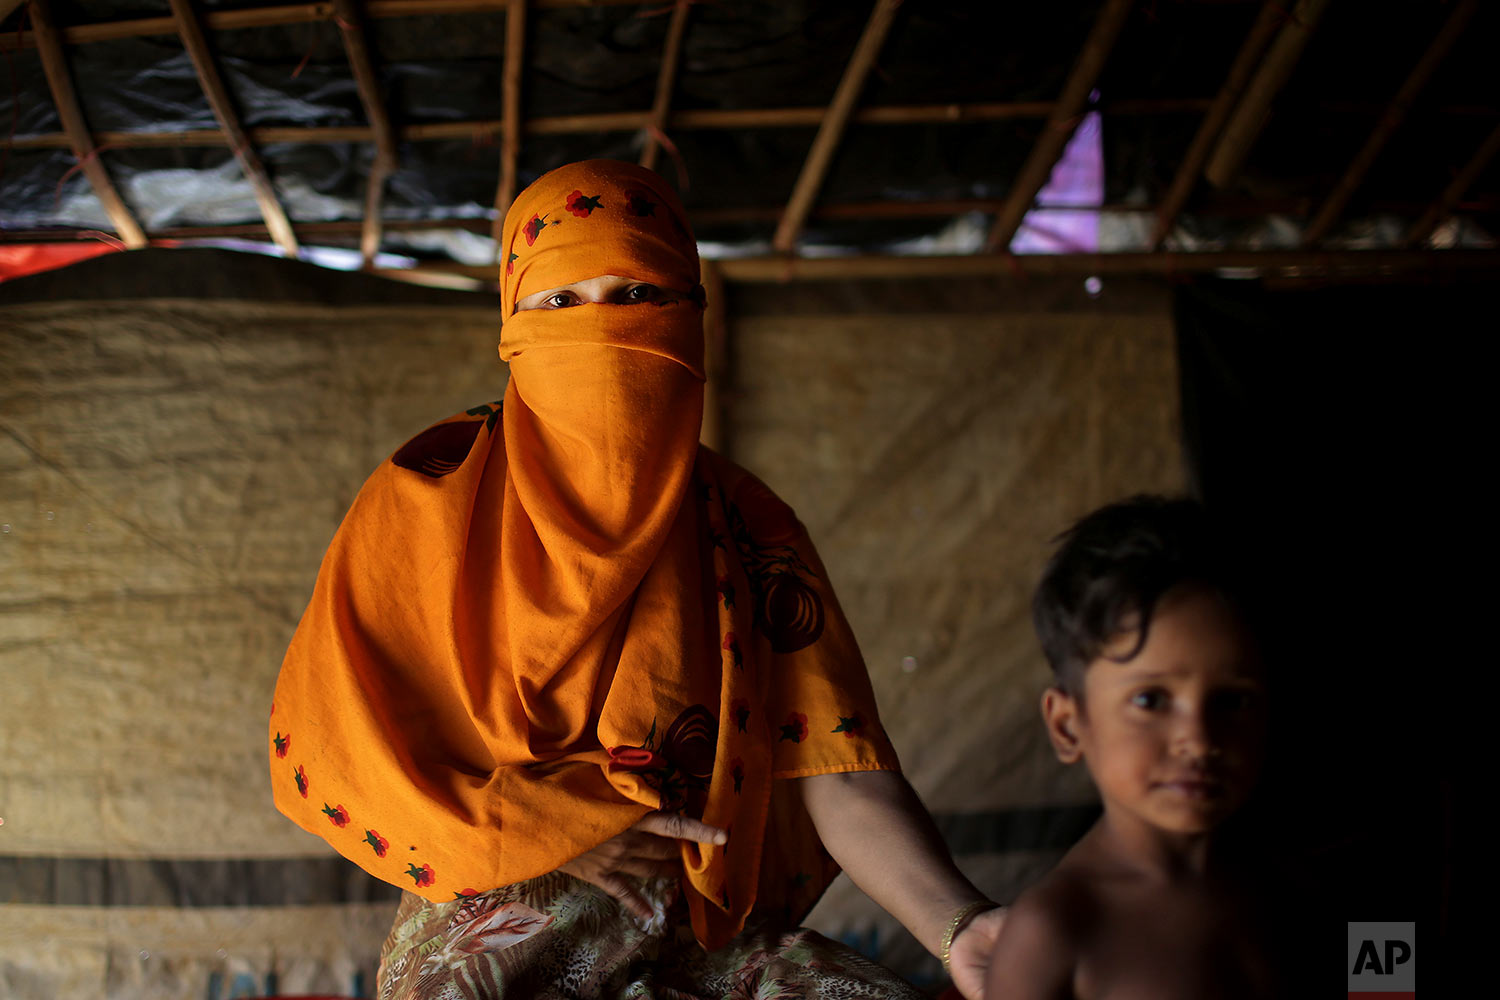 In this Tuesday, Nov. 21, 2017, photo, S, 25, mother of four who's baby girls were killed, and says she was raped by members of Myanmar's armed forces in October, 2016, is photographed with her child next to her in their friend's tent in Kutupalong refugee camp in Bangladesh.  (AP Photo/Wong Maye-E)